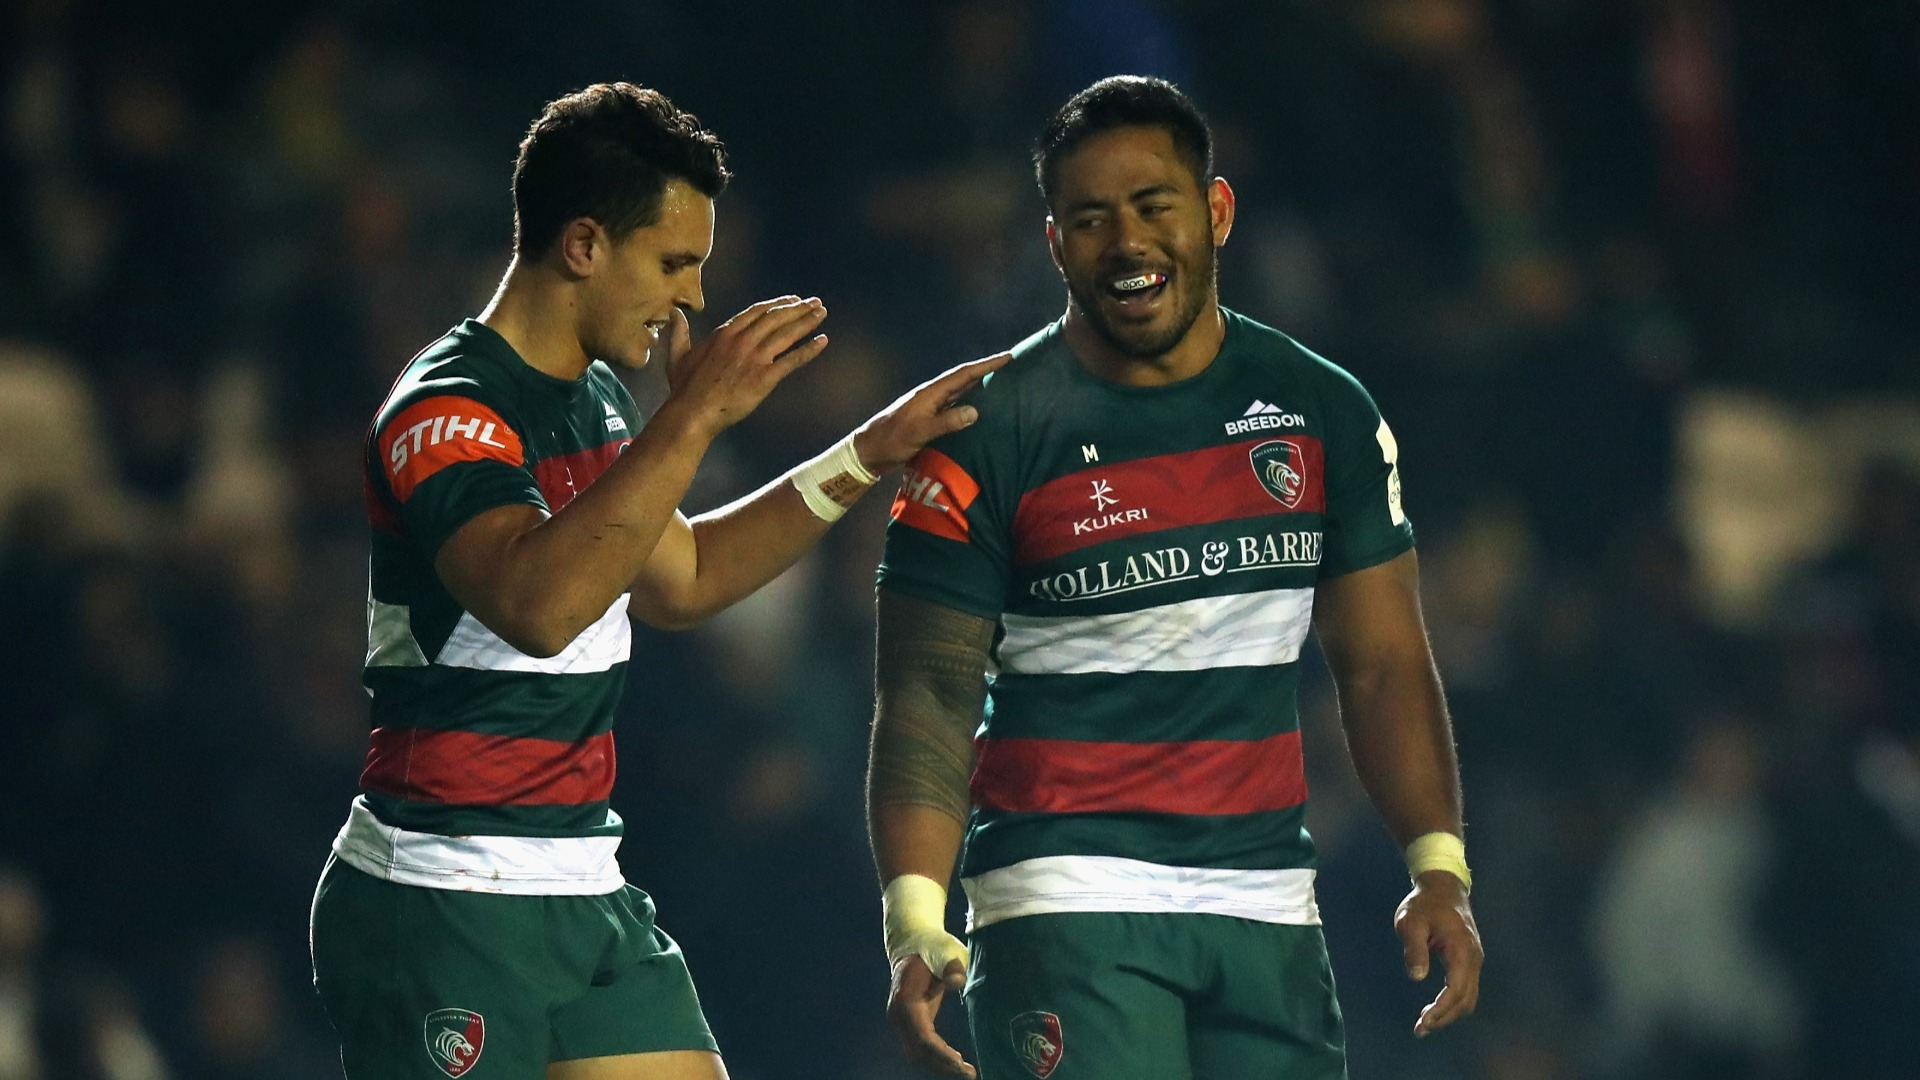 Manu Tuilagi, George Ford and Jonny May were all the subject of jibes from Matt Toomua ahead of the Australia's battle with England.